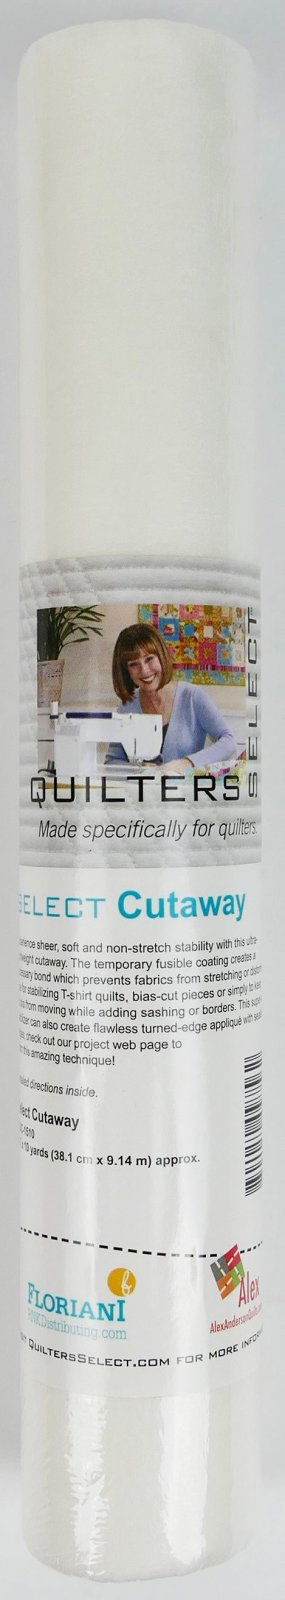 Select Cutaway - 20 x 10 yds - Quilters Select